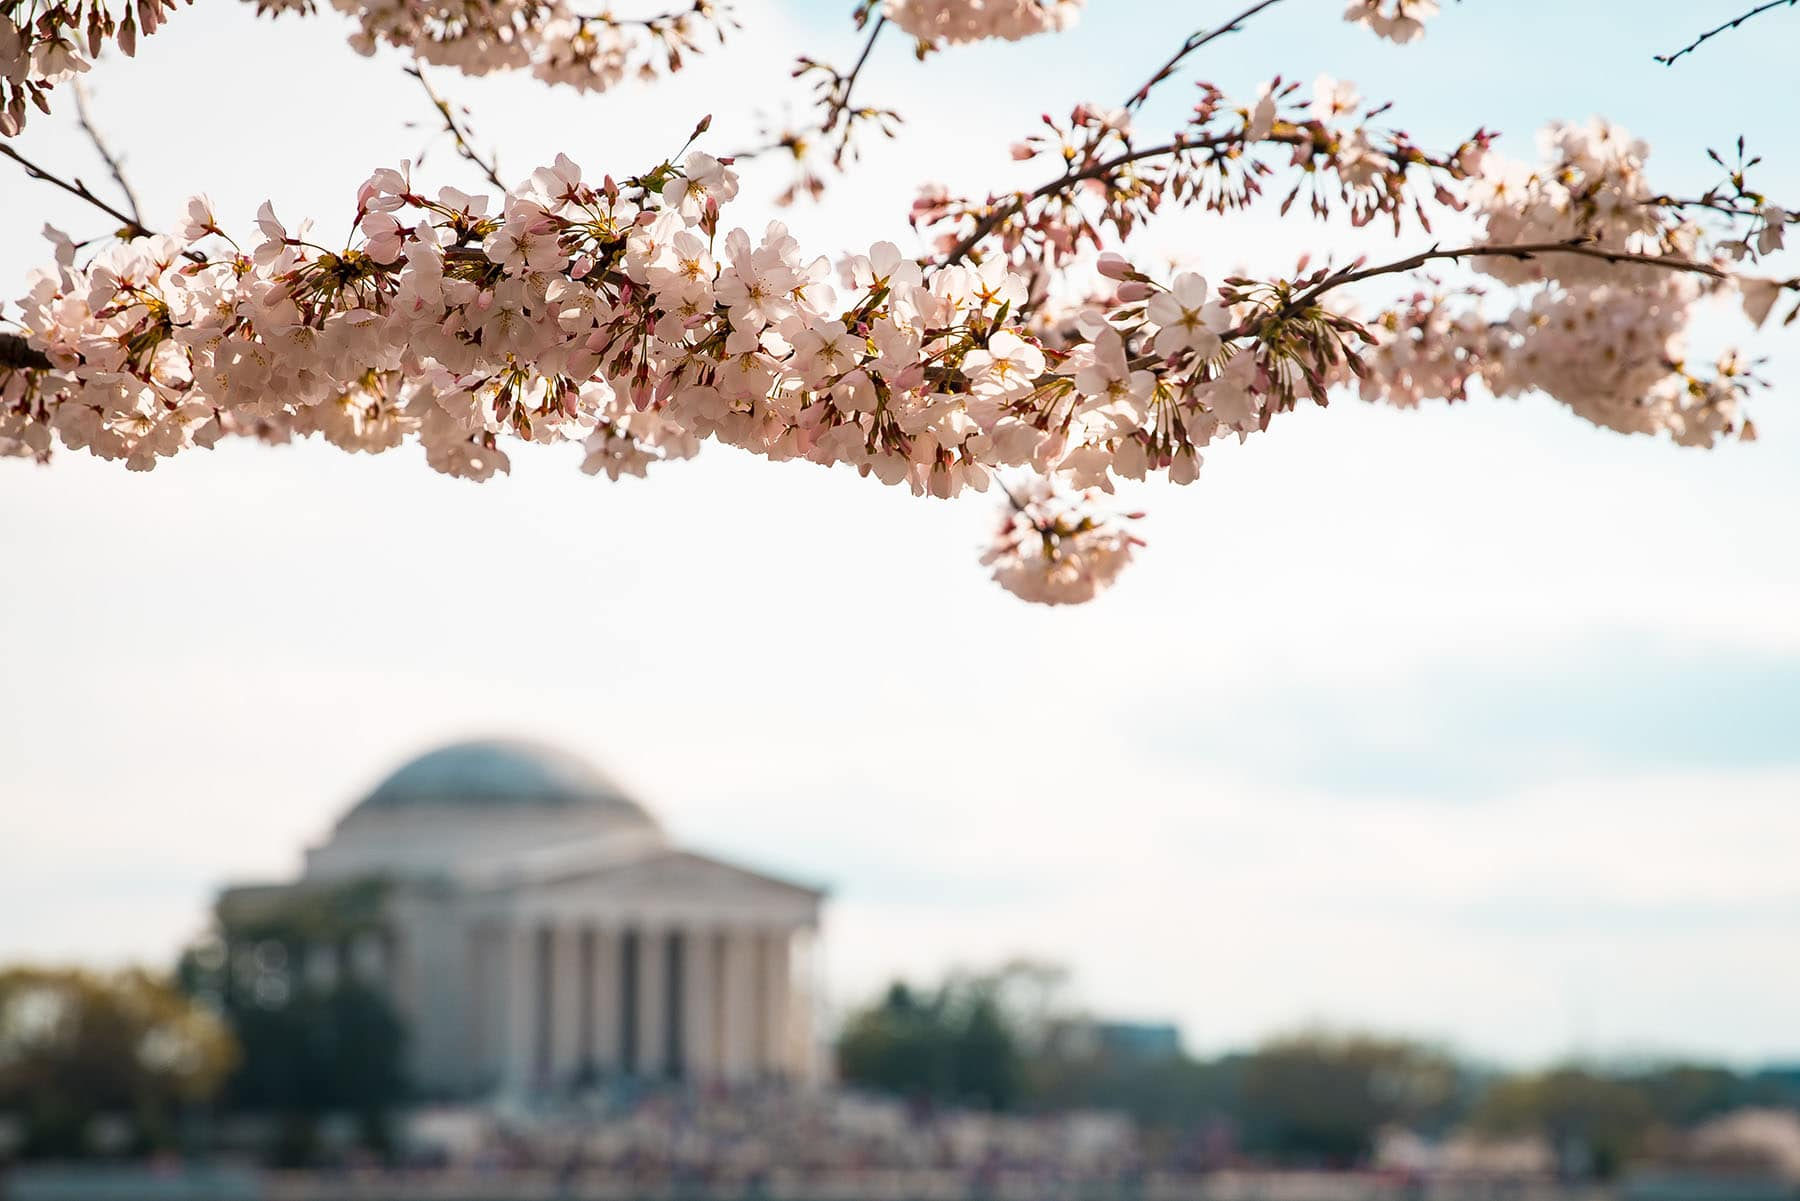 Cheery blossom in the capital